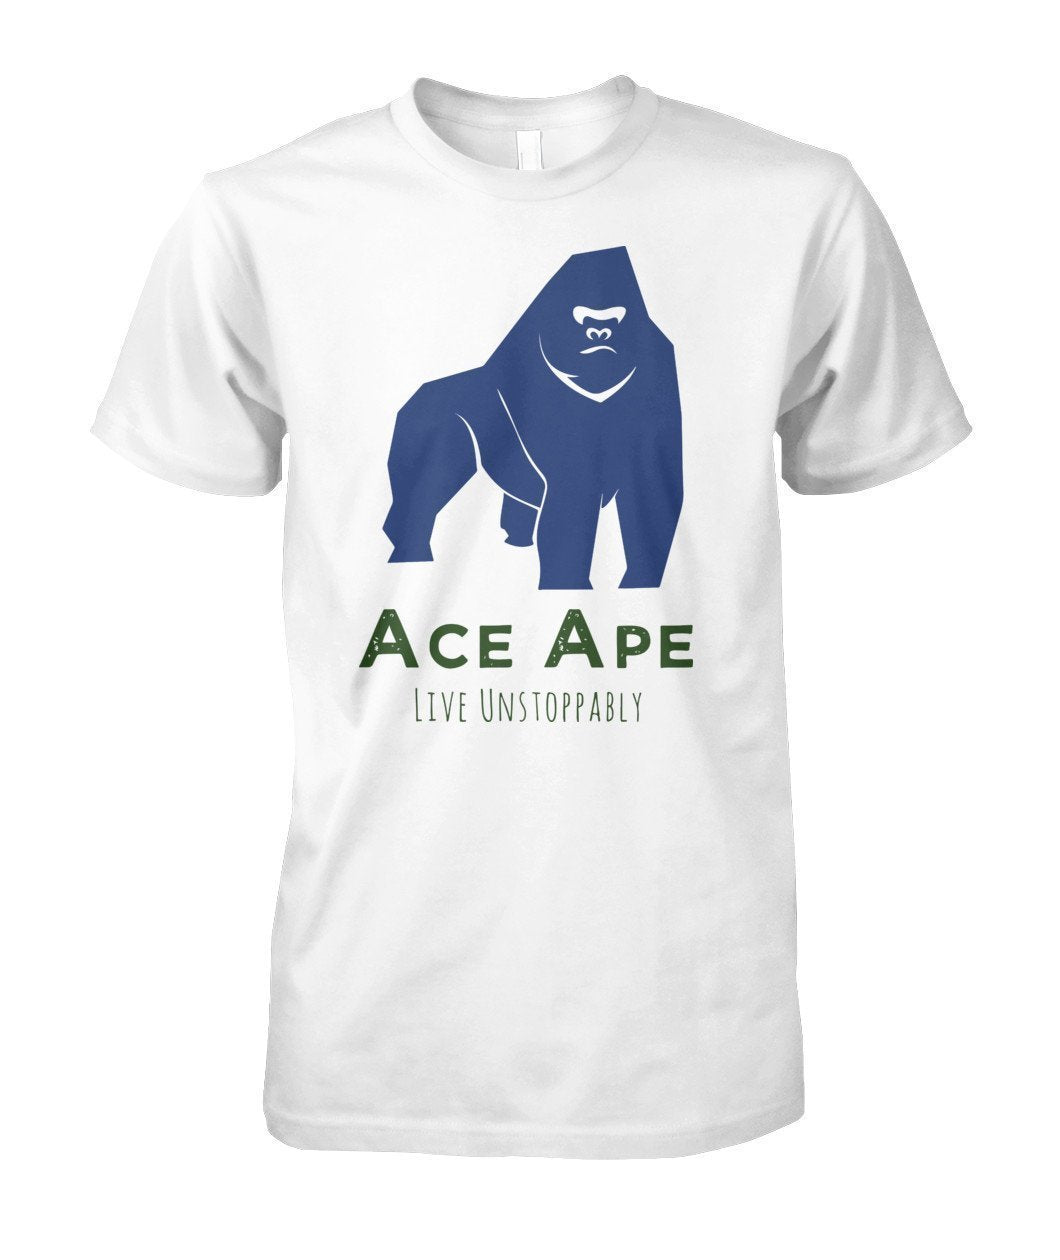 Short Sleeves White / S Stressed Out Unisex Cotton Tee AceApe CBD Dispensary